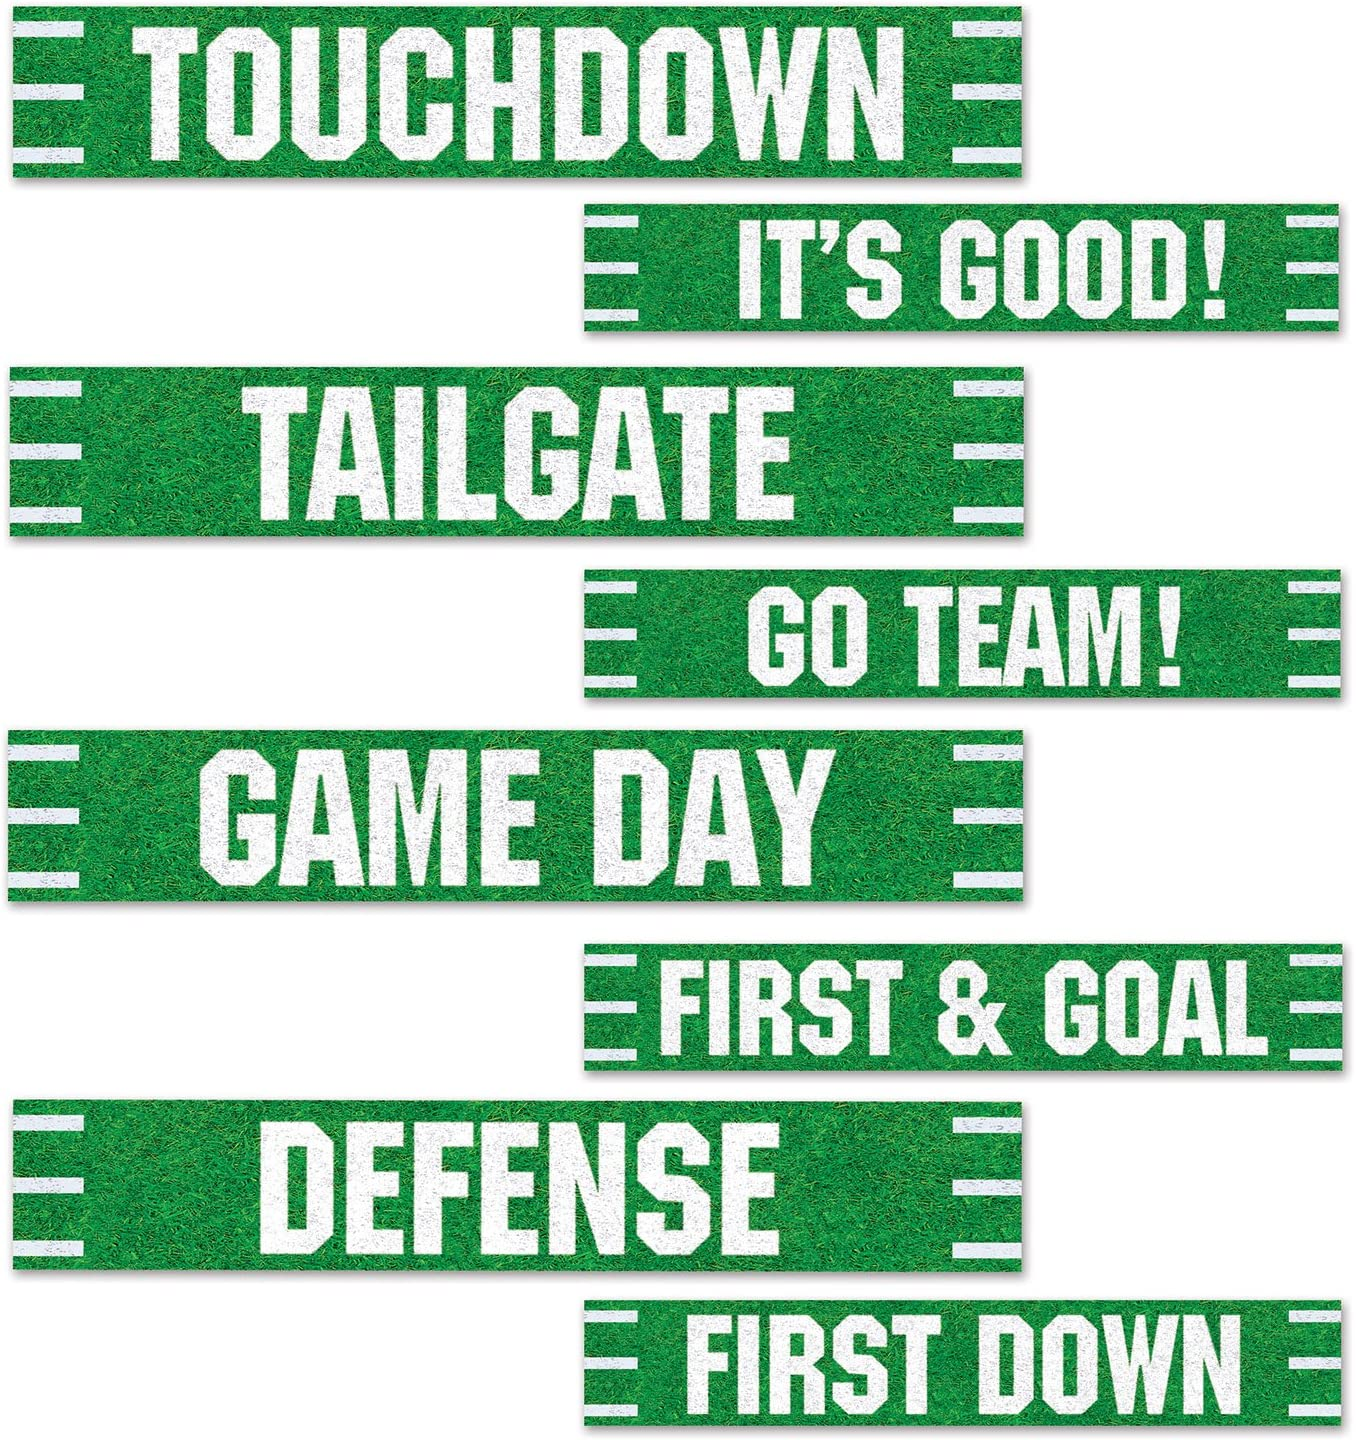 Amazon Com Beistle 4 Piece Game Day Street Sign Cut Outs Sports Birthday Football Theme Party Decorations 4 By 24 Inch Green White Kitchen Dining